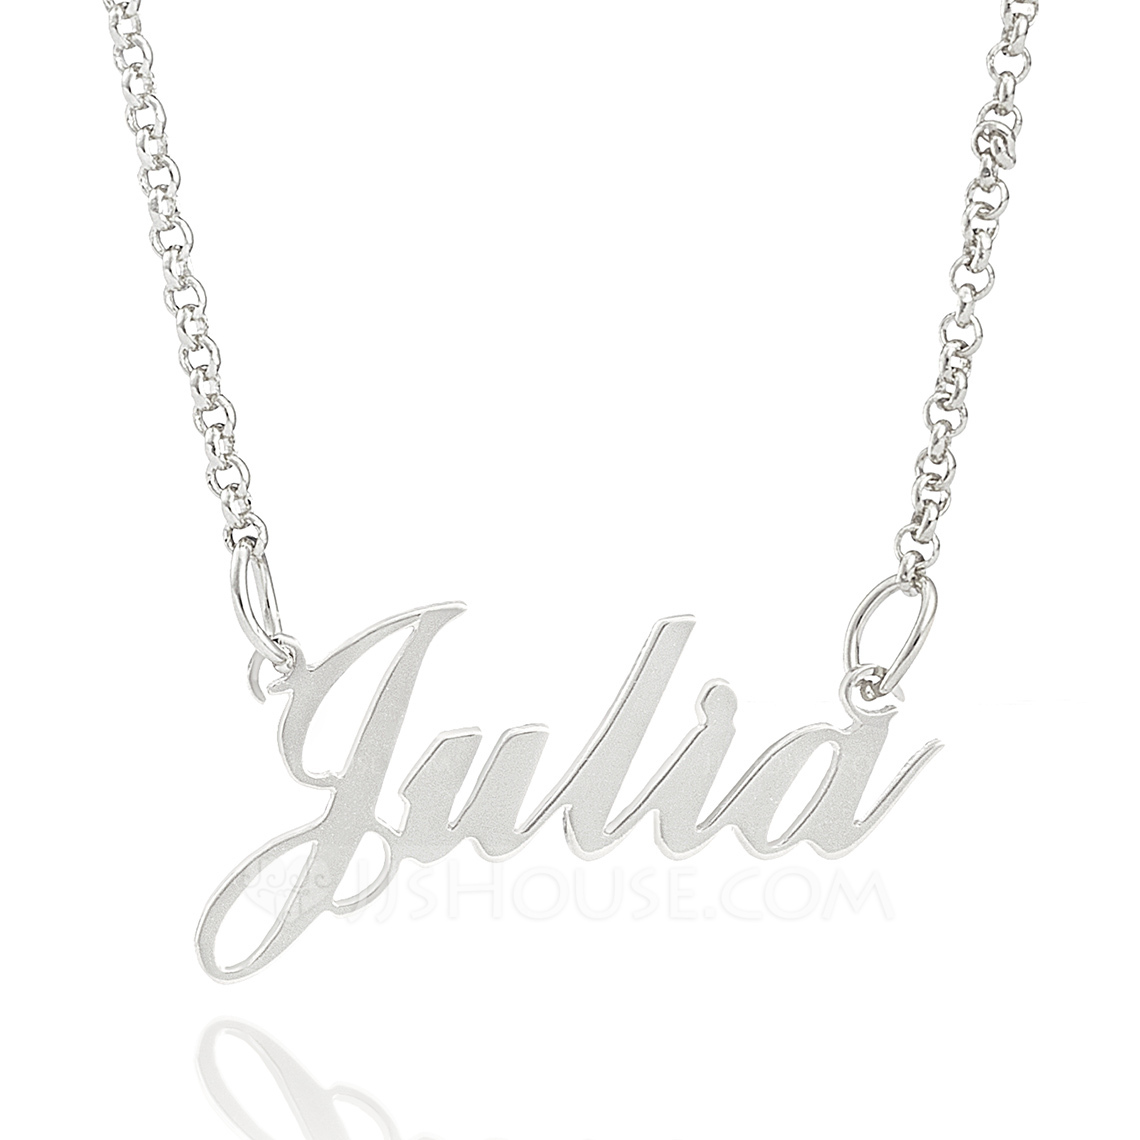 Custom Sterling Silver Signature Script Name Necklace - Christmas Gifts